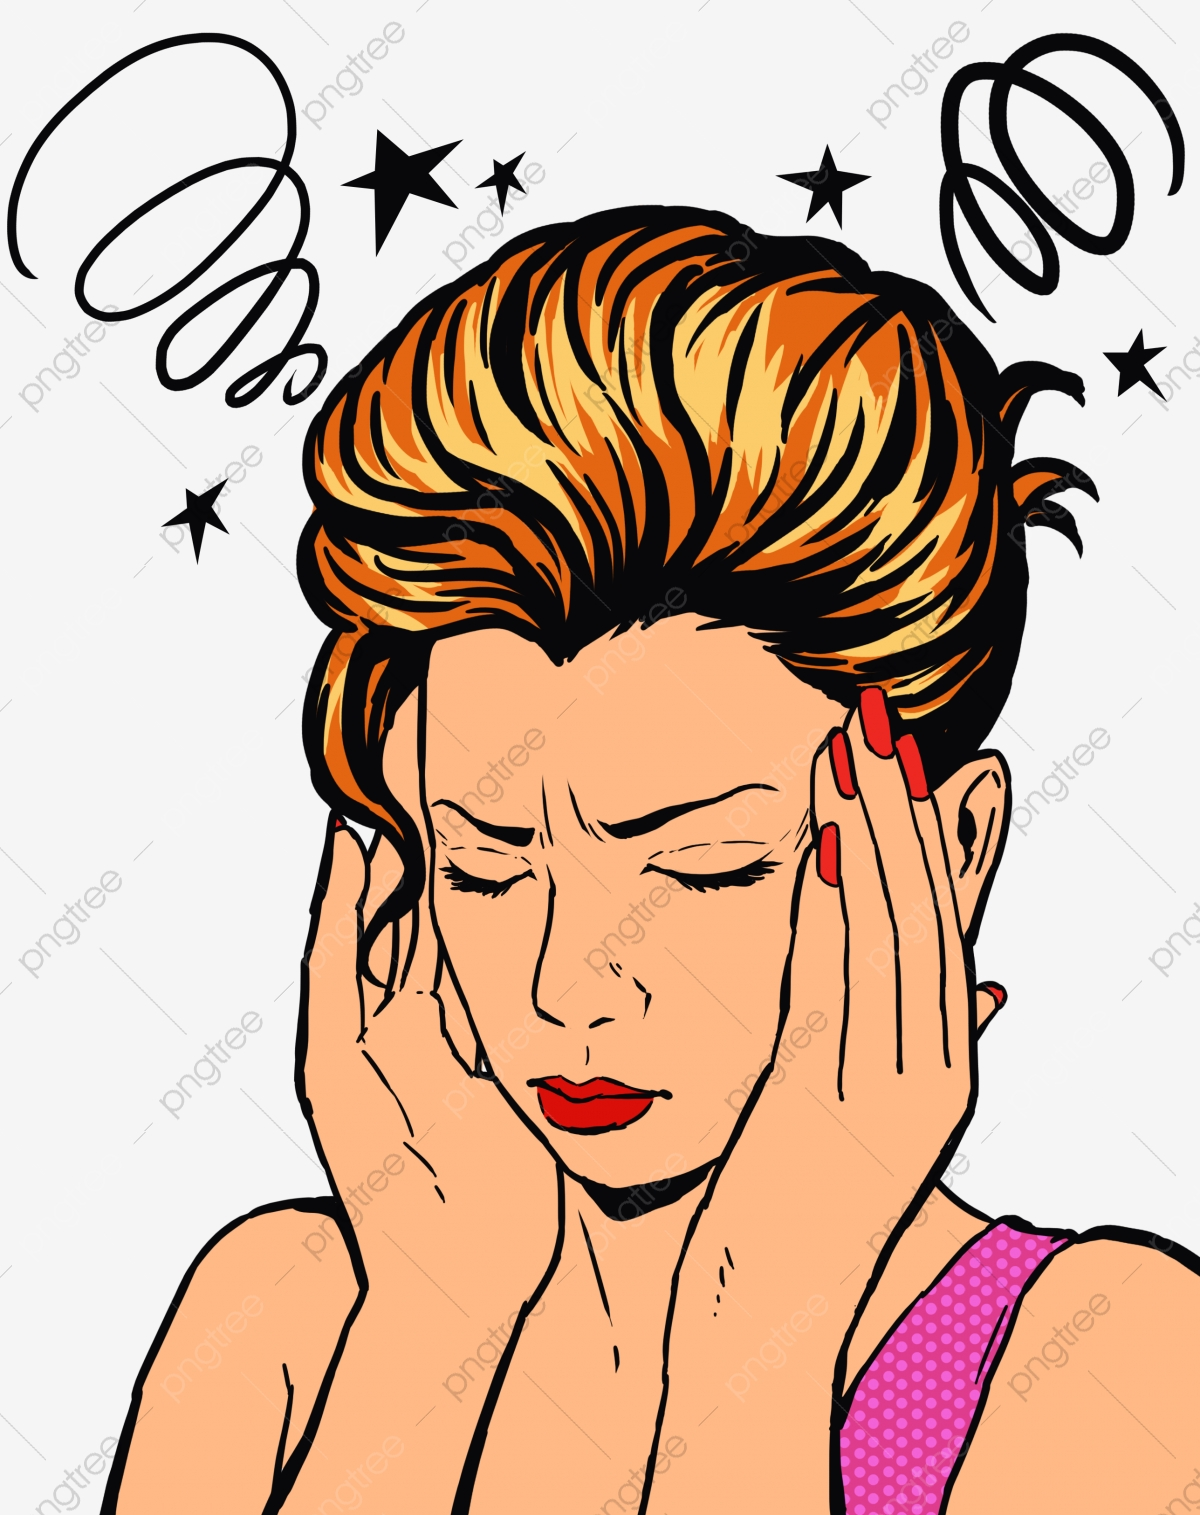 Dizziness And Headache Sick Uncomfortable Dizzy Png Transparent Clipart Image And Psd File For Free Download